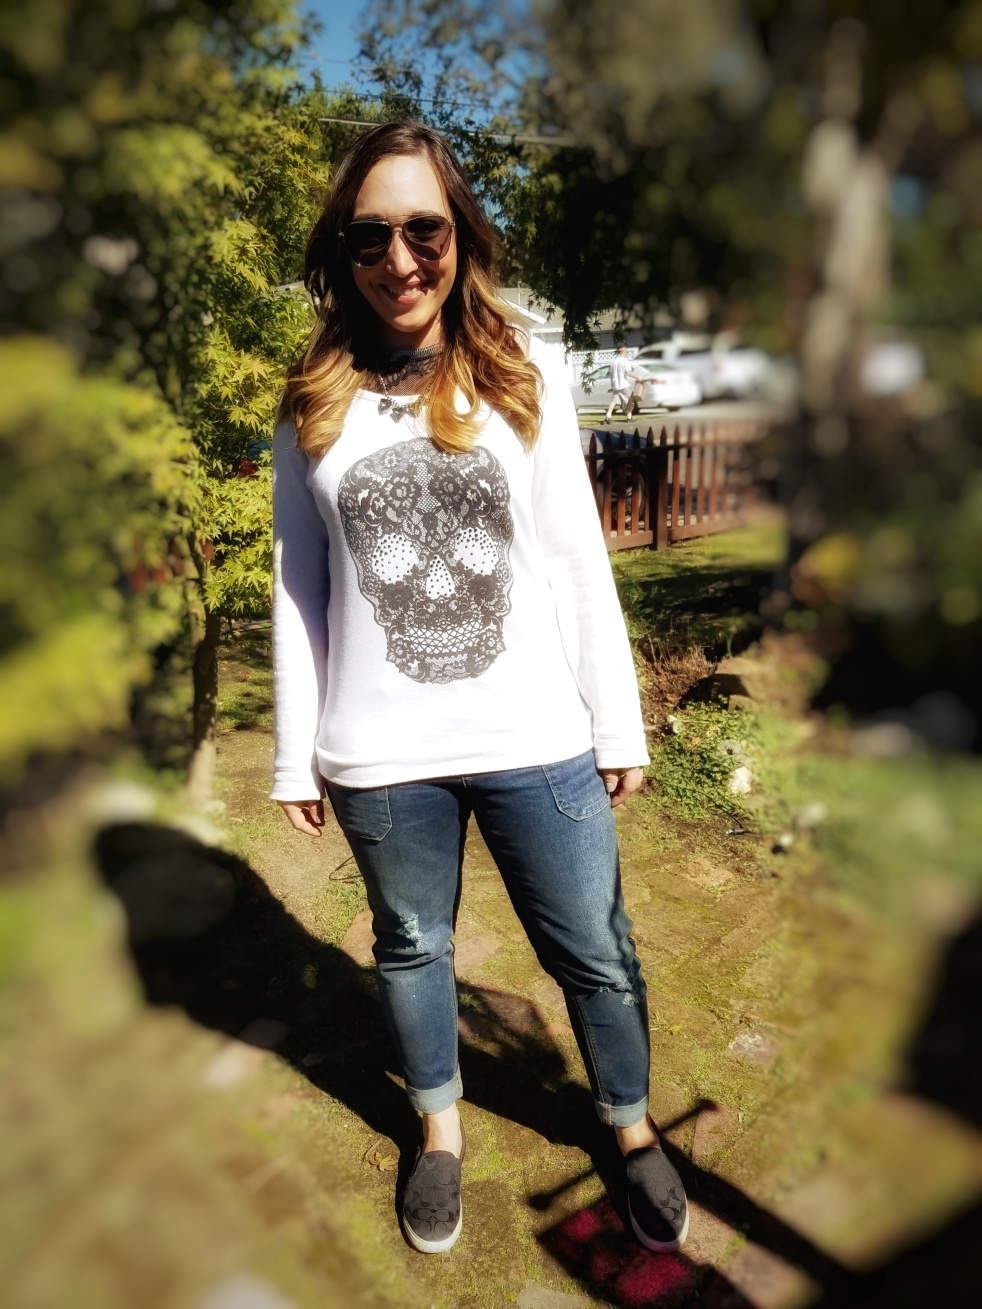 october ootd, fashion blogger, halloween ootd, black skull, skull sweatshirt, girlfriend jeans